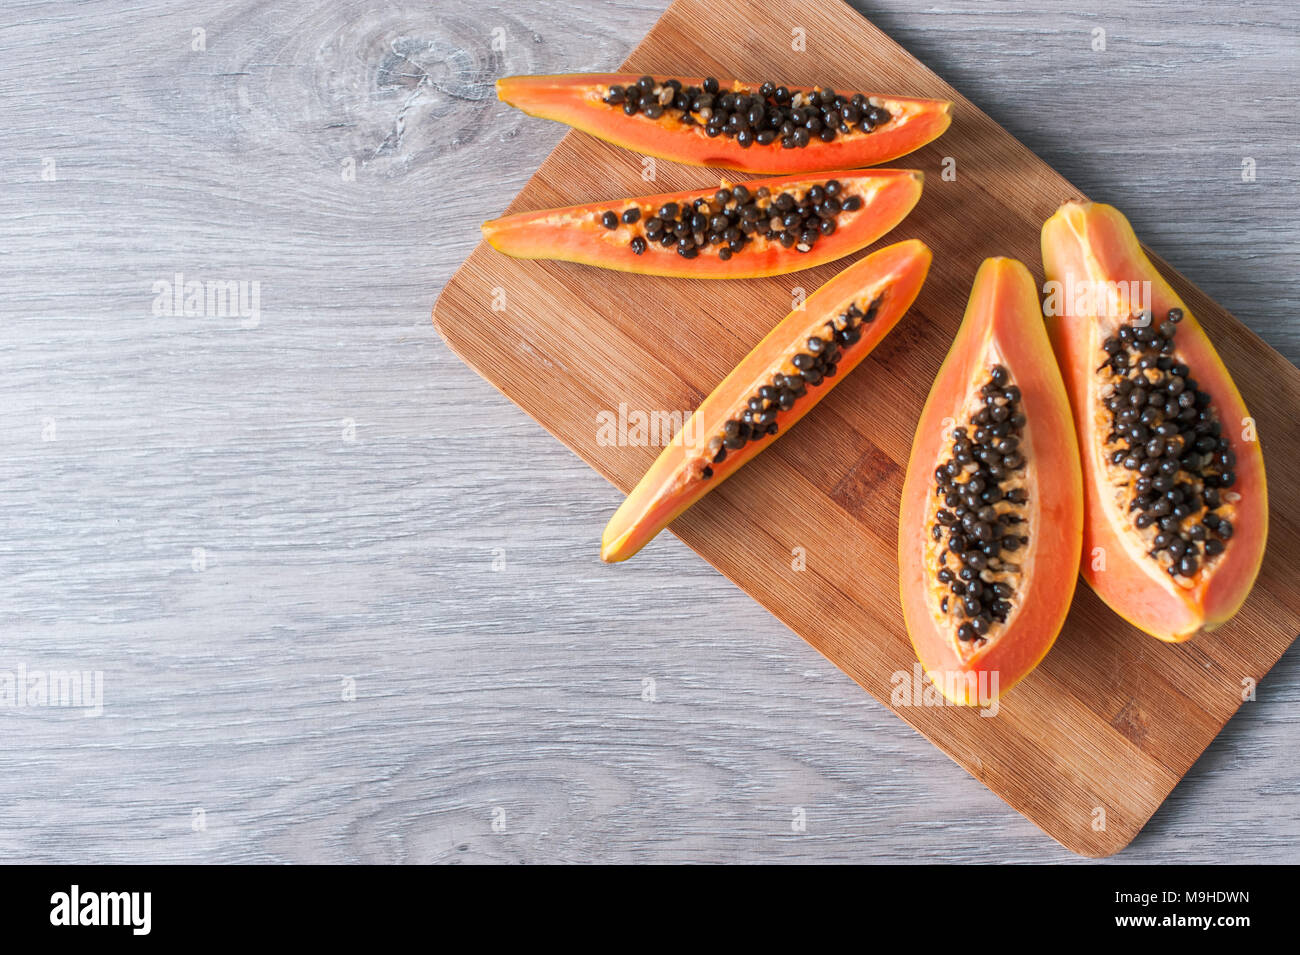 Papaya on wooden background. Healthy food, ripe exotic fruits. The concept of vegetarianism - Stock Image